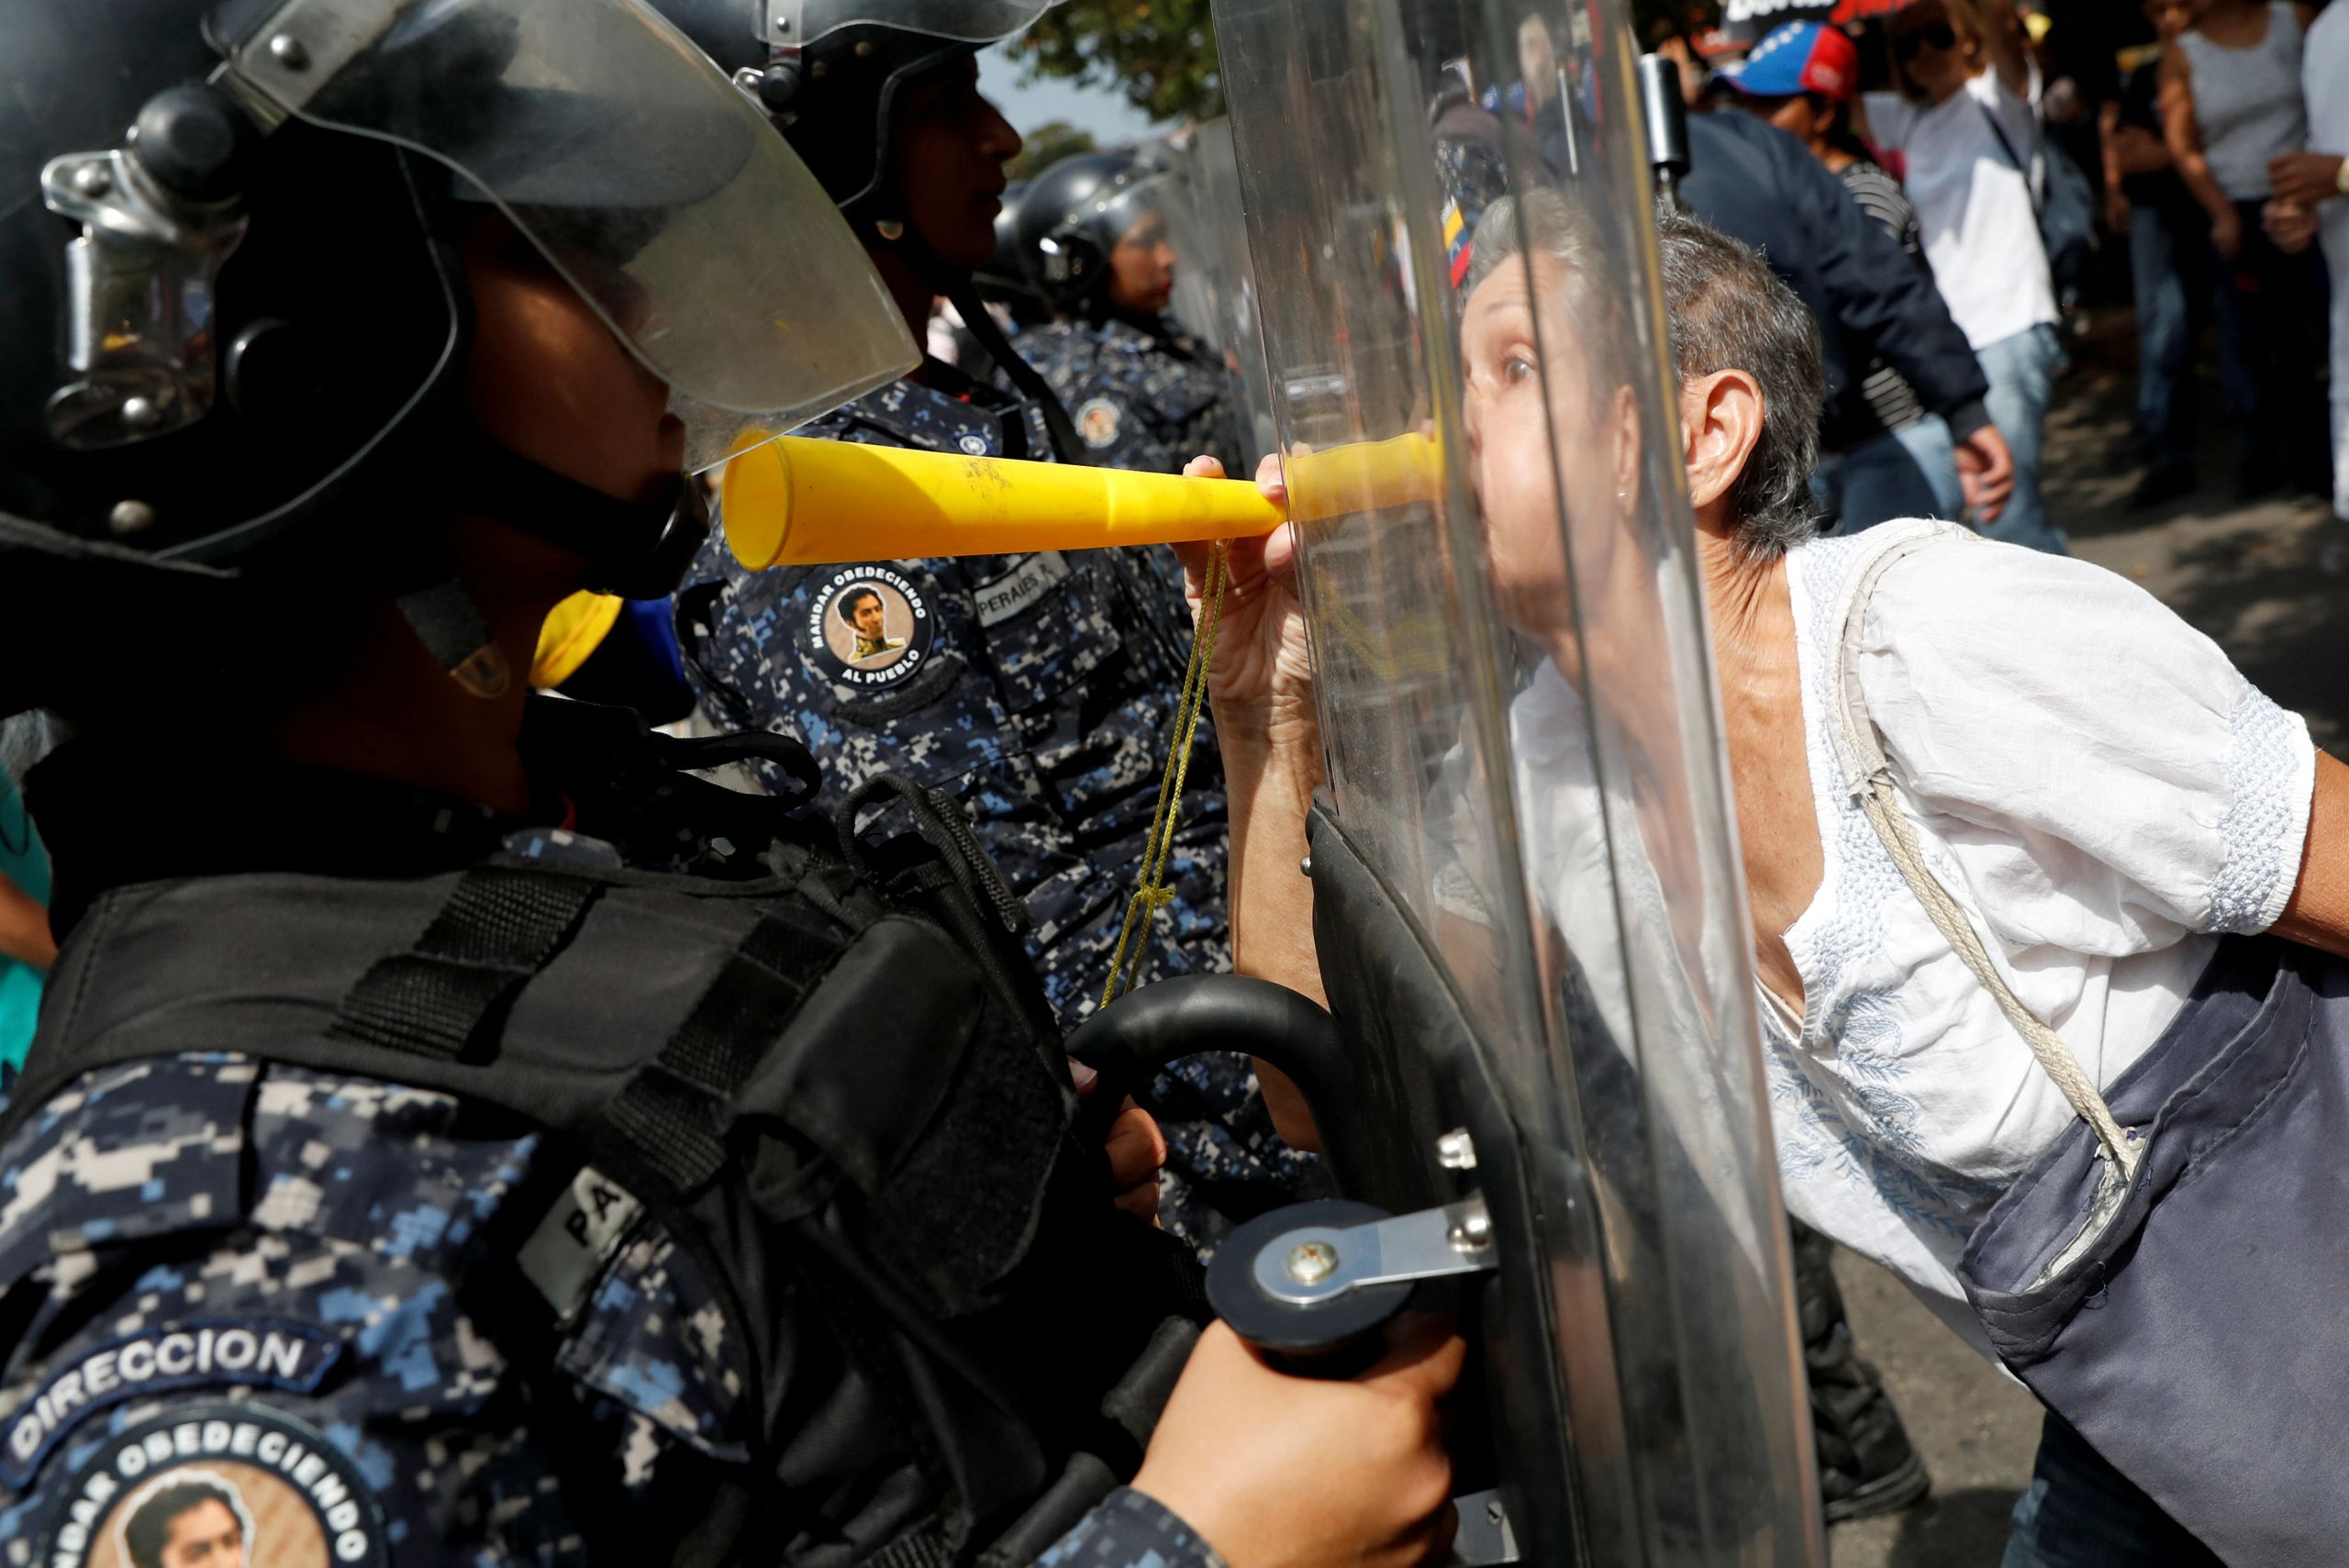 An opposition protester confronts a police officer at a rally against Venezuelan President Nicolás Maduro's government